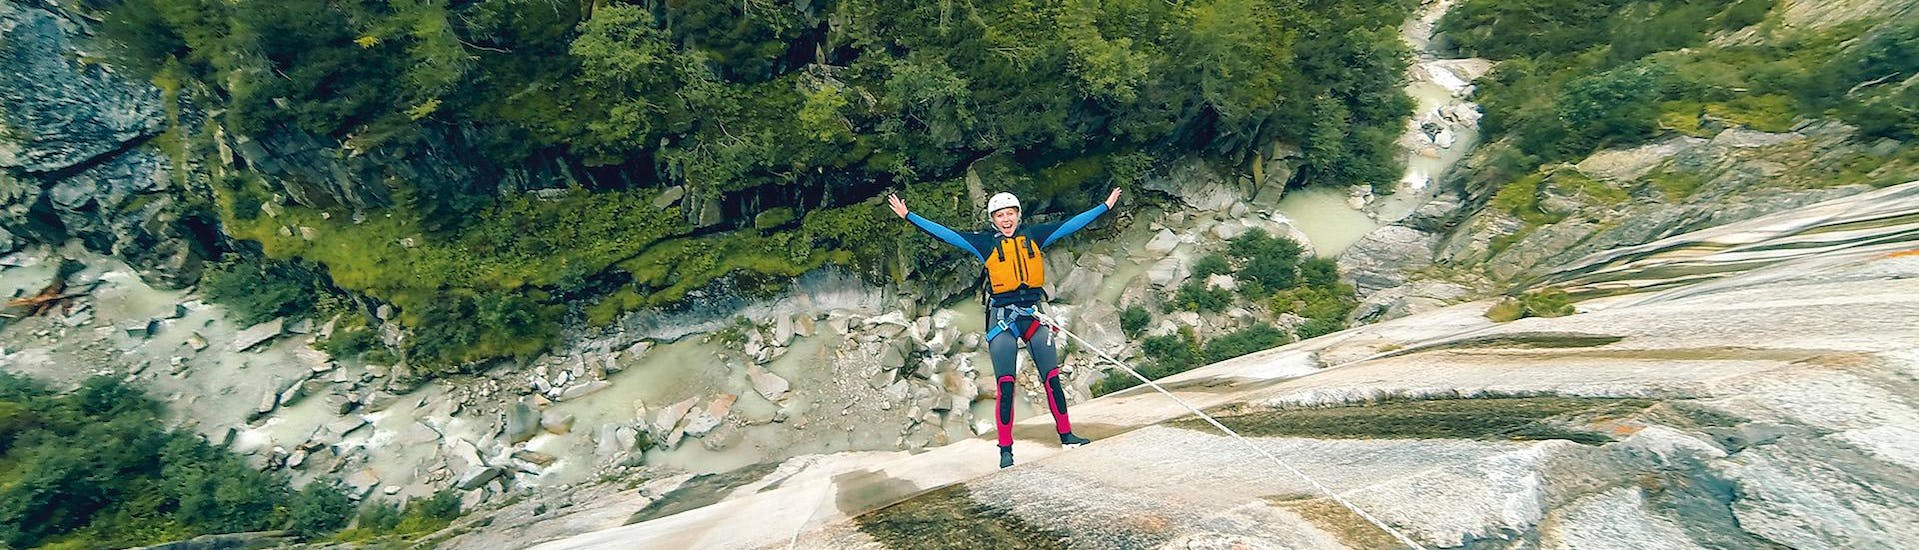 Canyoning in the Grimsel Gorge for the Brave